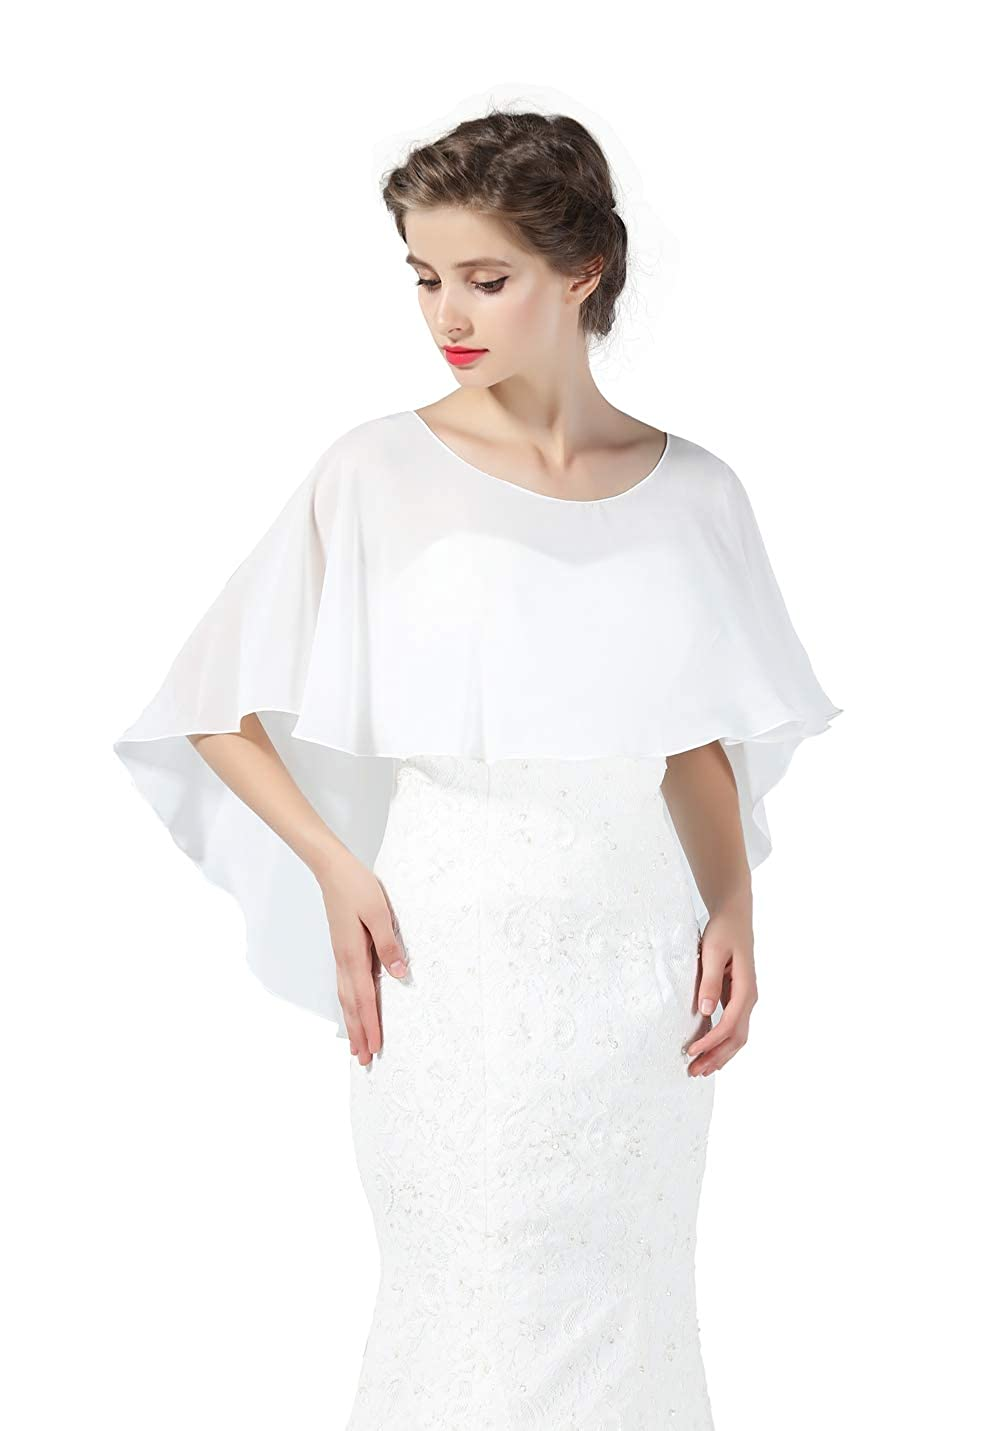 BEAUTELICATE Chiffon Shawl Cape High-Low Tops Capelet for Women Summer Ladies Bridal Wedding Evening 28 Colors